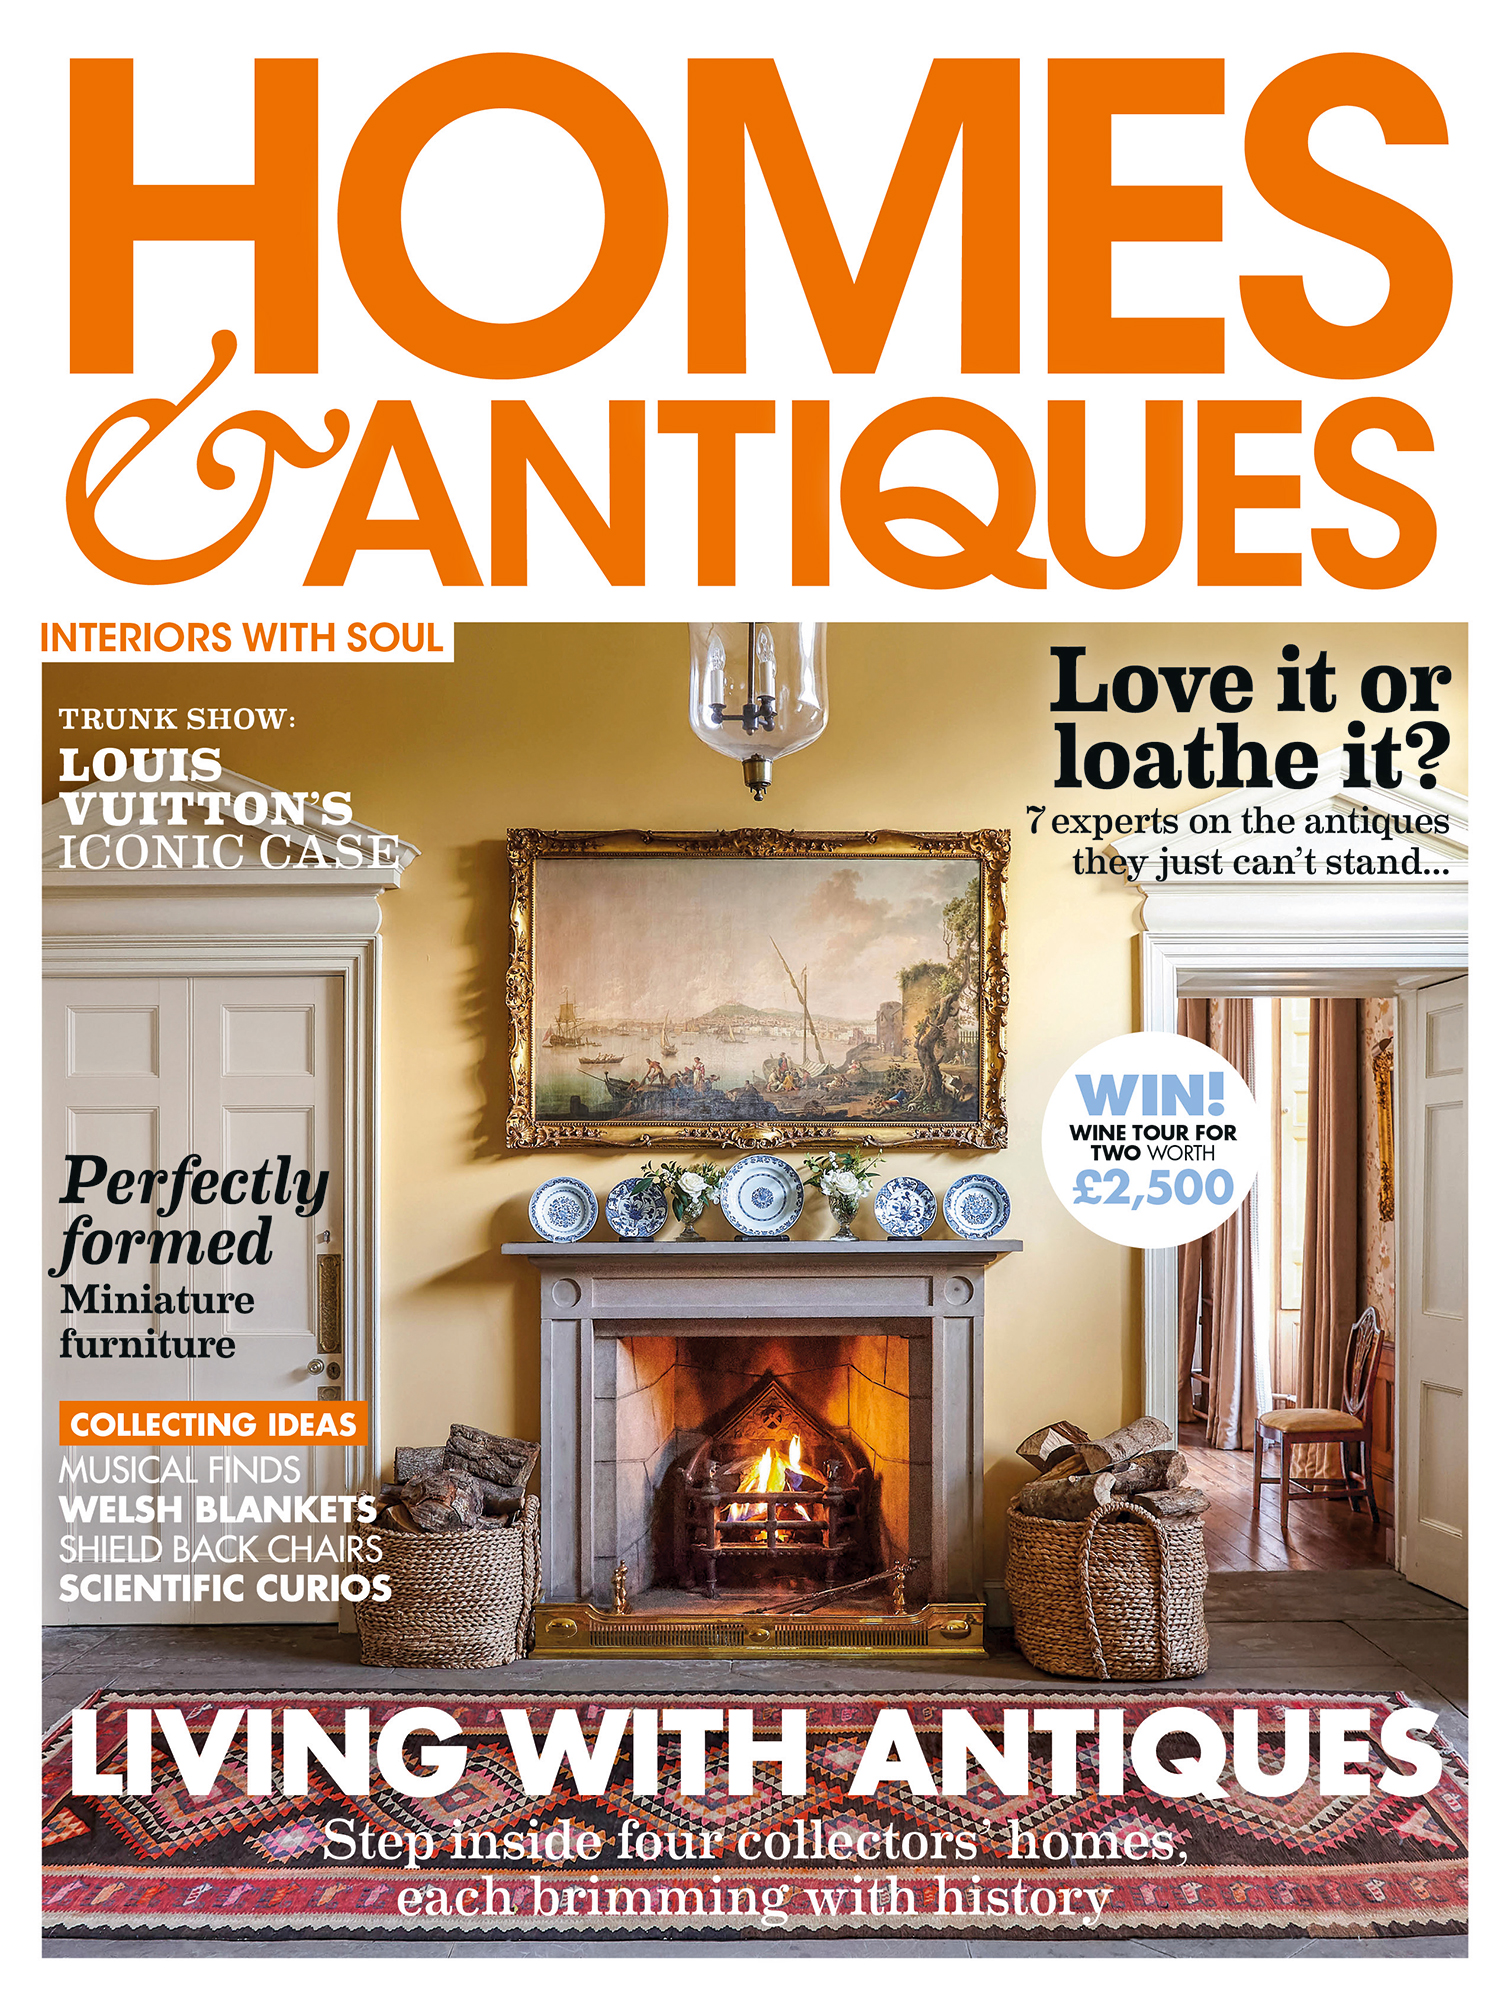 Homes & Antiques - Beautiful Heirloom Home